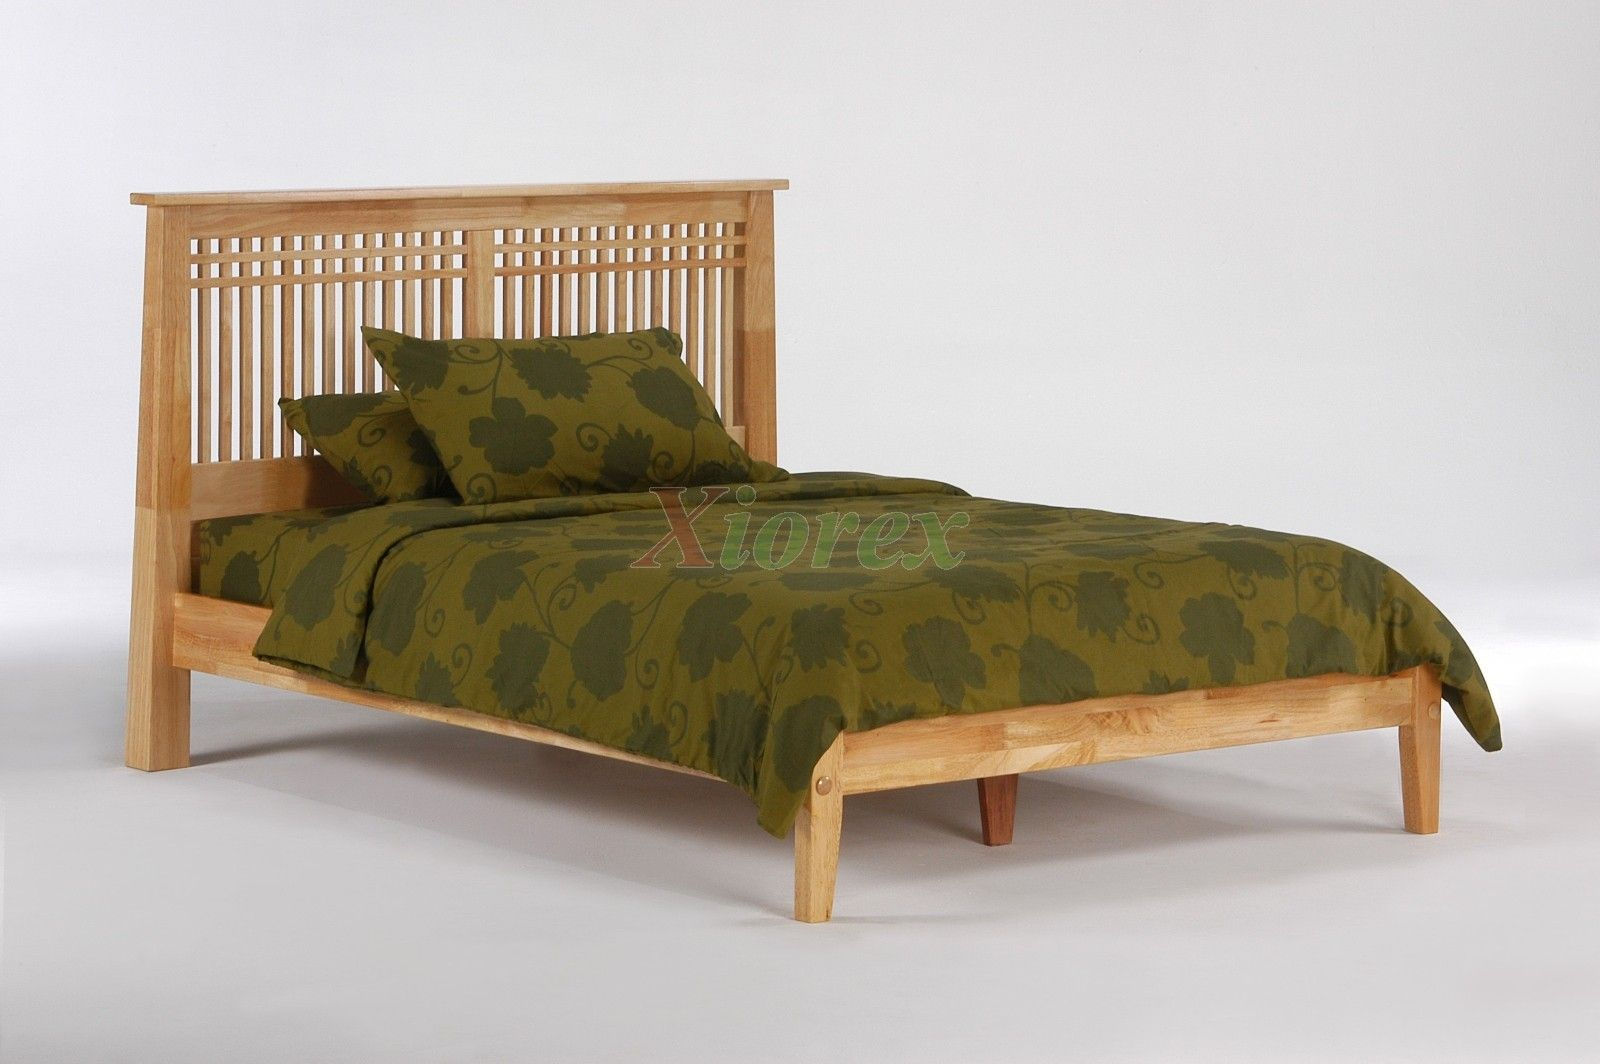 Night and Day Solstice Bed Solstice Bed by Night and Day Furnitur :  is a Lattice Bed with 100% solid wood construction that totally defines the room it is in. Its Craftsman pattern of lattice work set within handsome tapered legs is as satisfying as it is beautiful. https://www.xiorex.com/solstice-bed-solstice-lattice-bed-by-night-and-day-xiorex